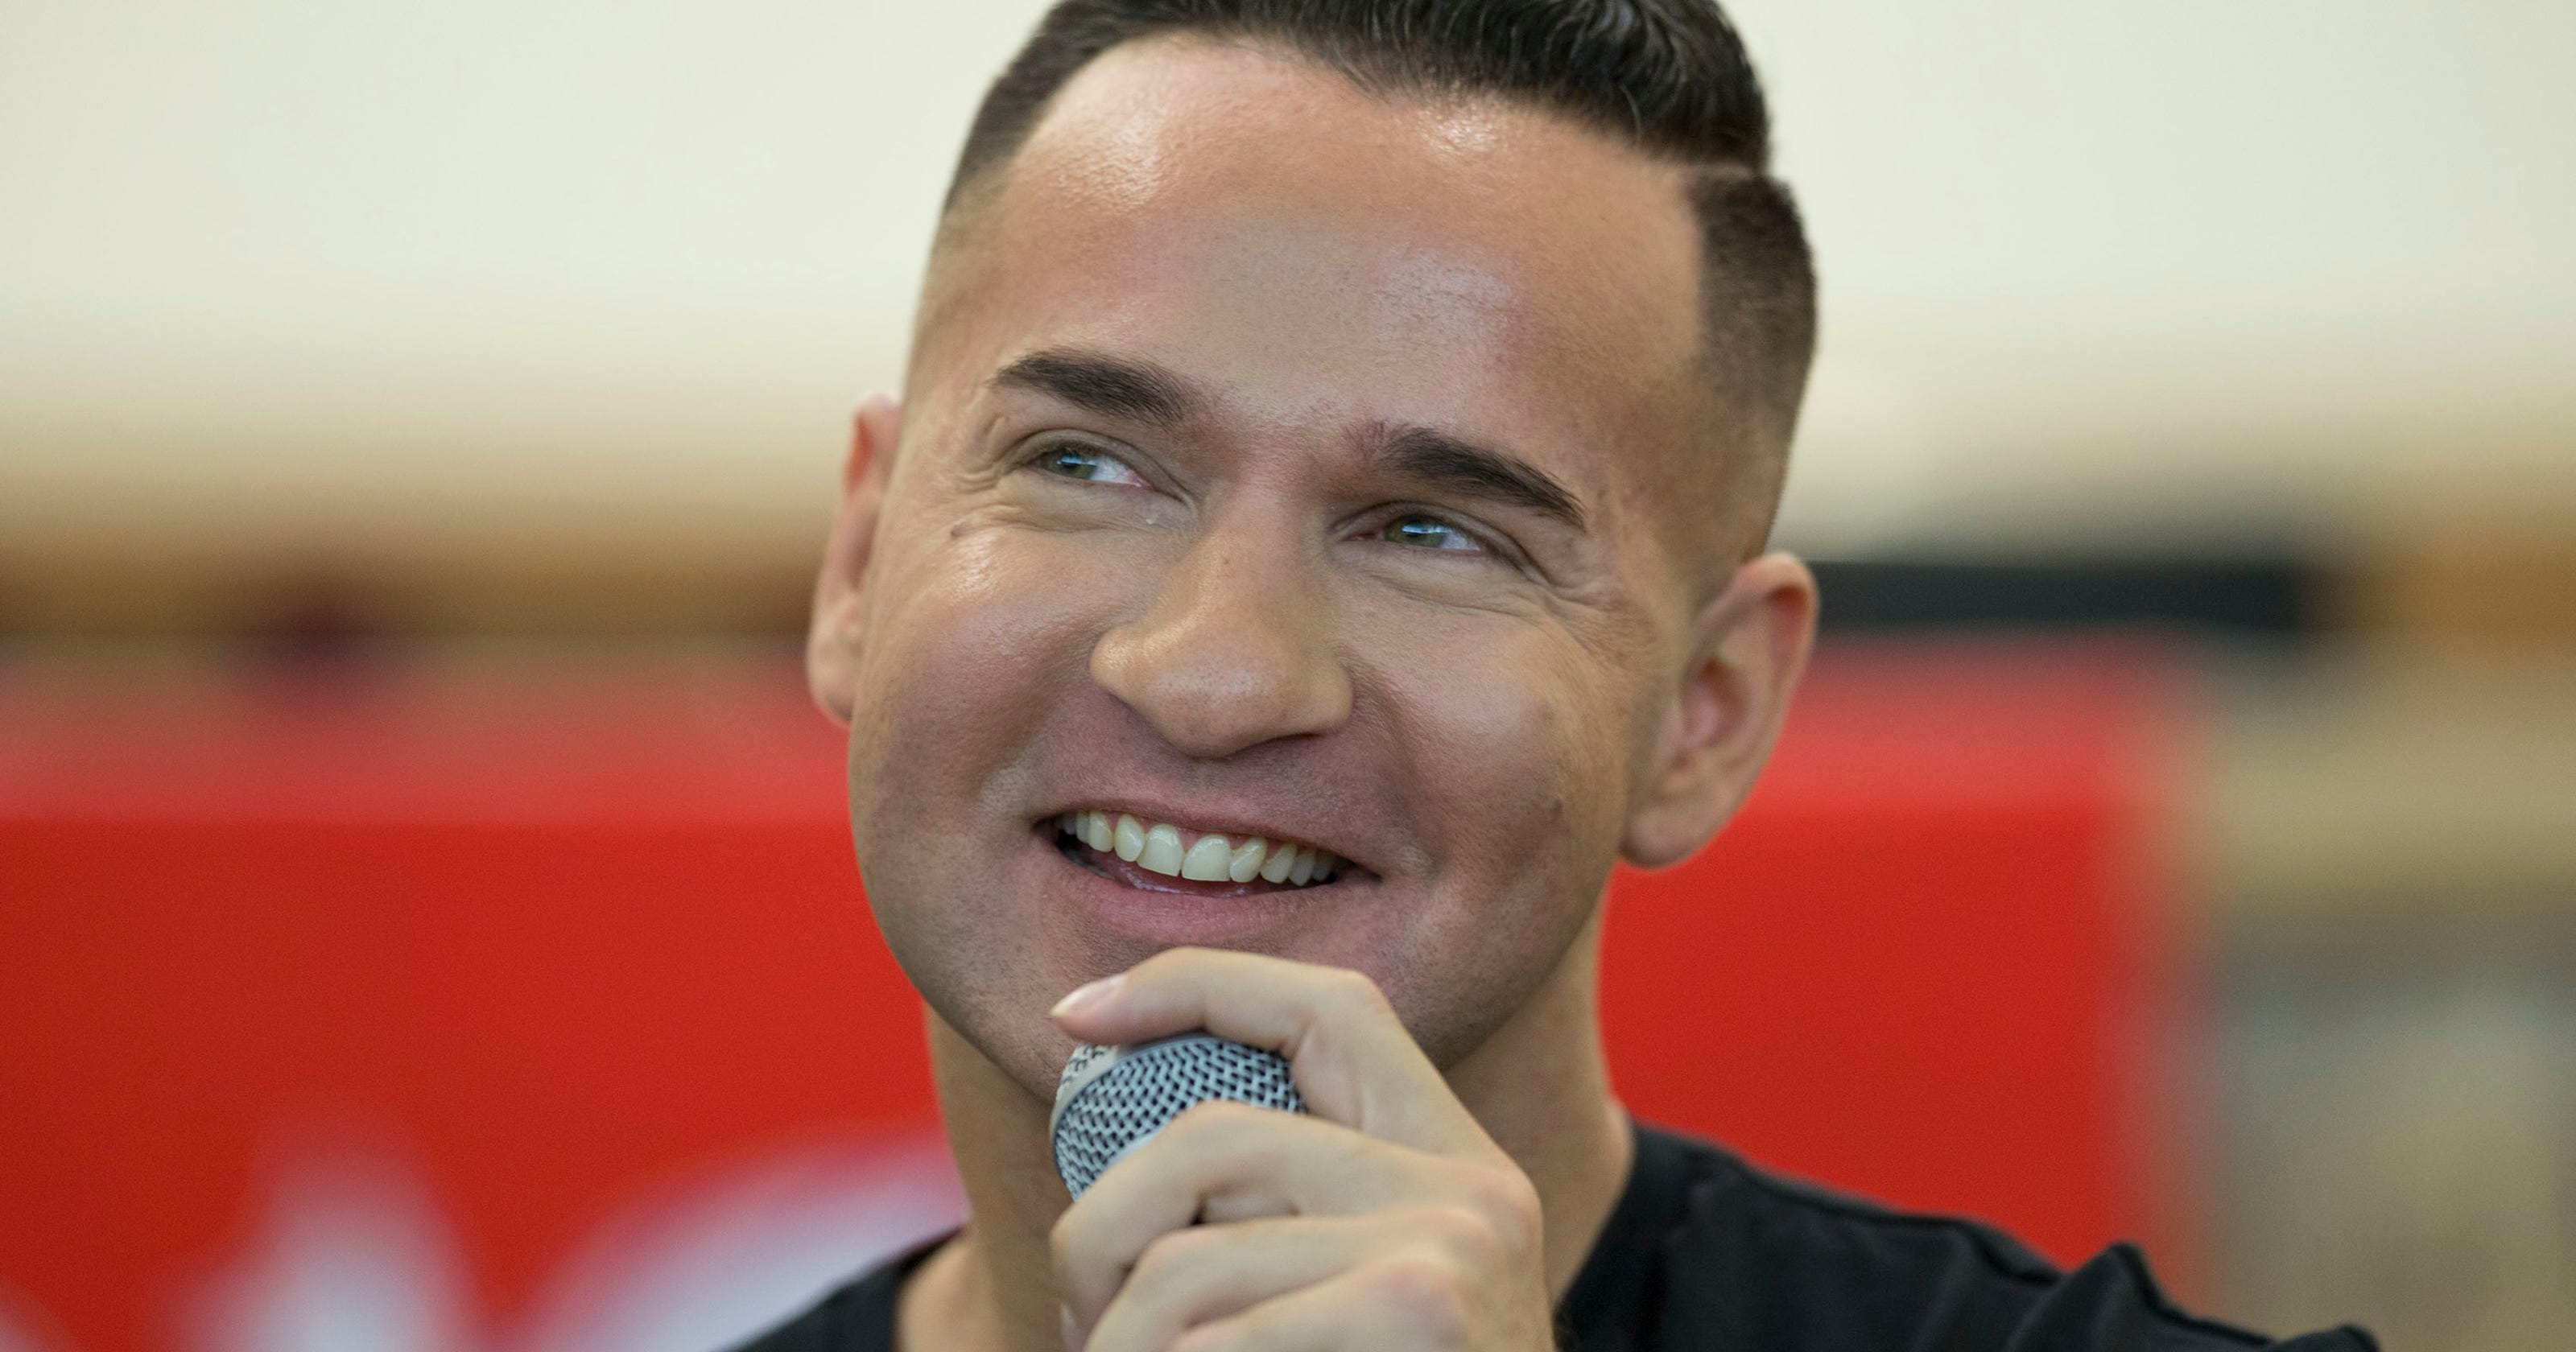 The Situation of 'Jersey Shore' talks drug addiction to Shore groups